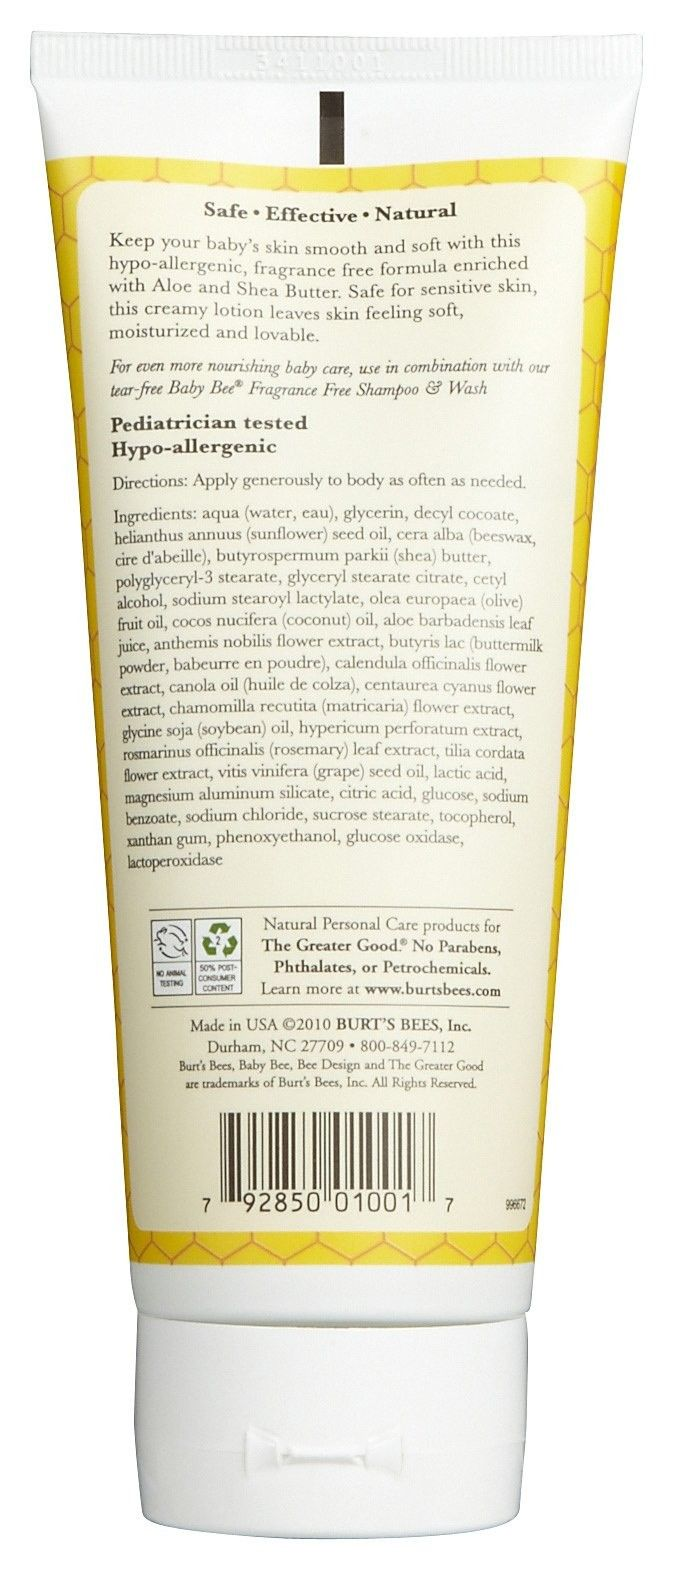 Burts Bees Lotion - Fragrance Free - 170 g